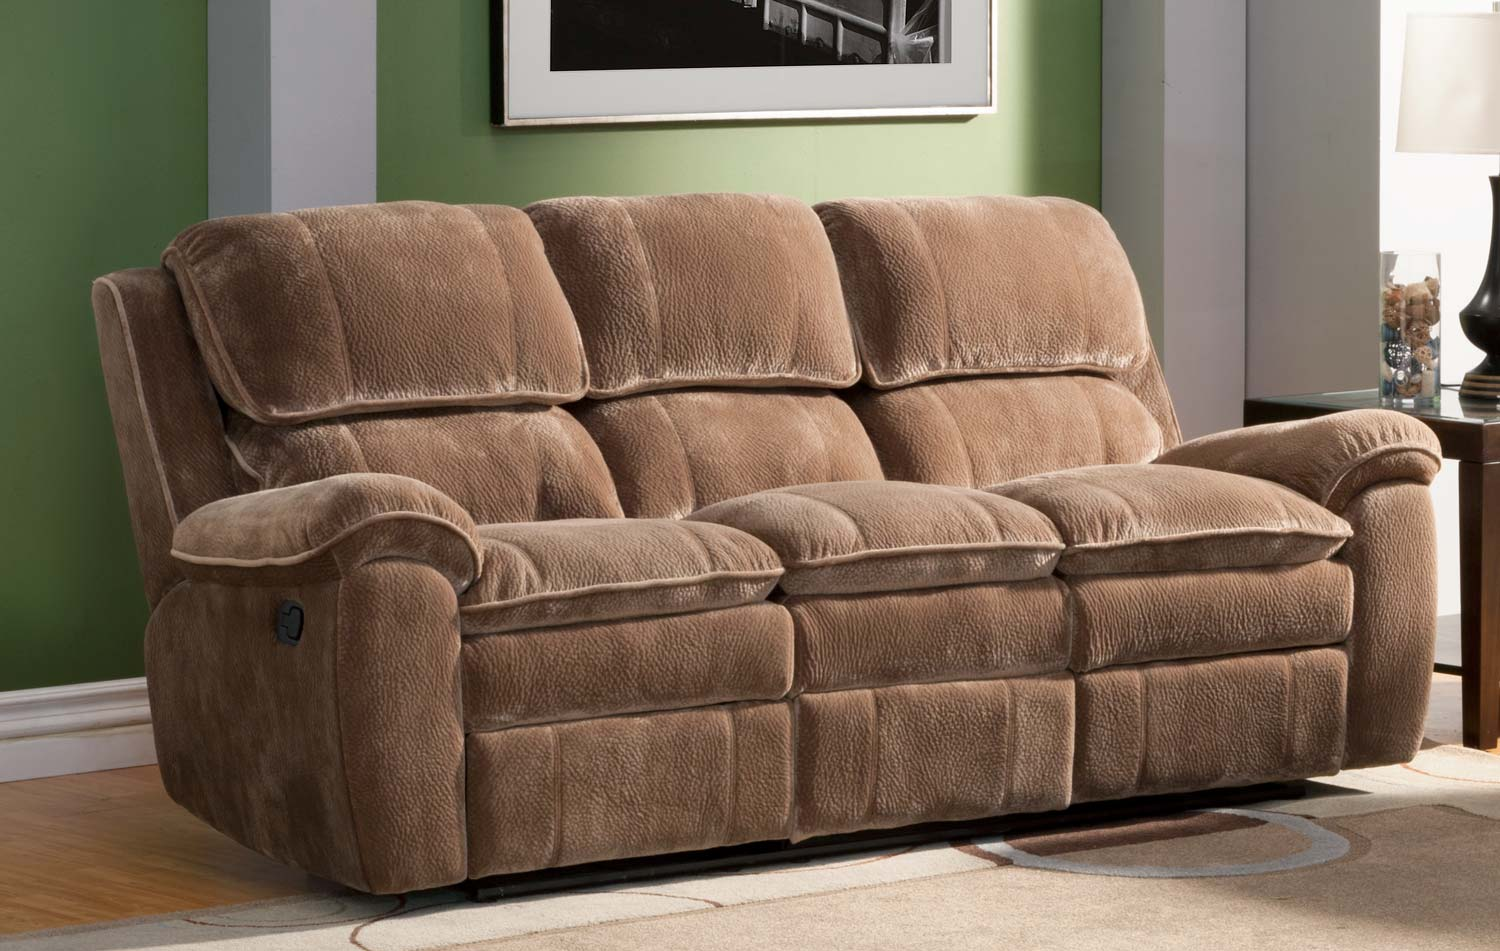 Homelegance Reilly Reclining Sofa Set Brown Textured Plush Microfiber U9766cp 3 At